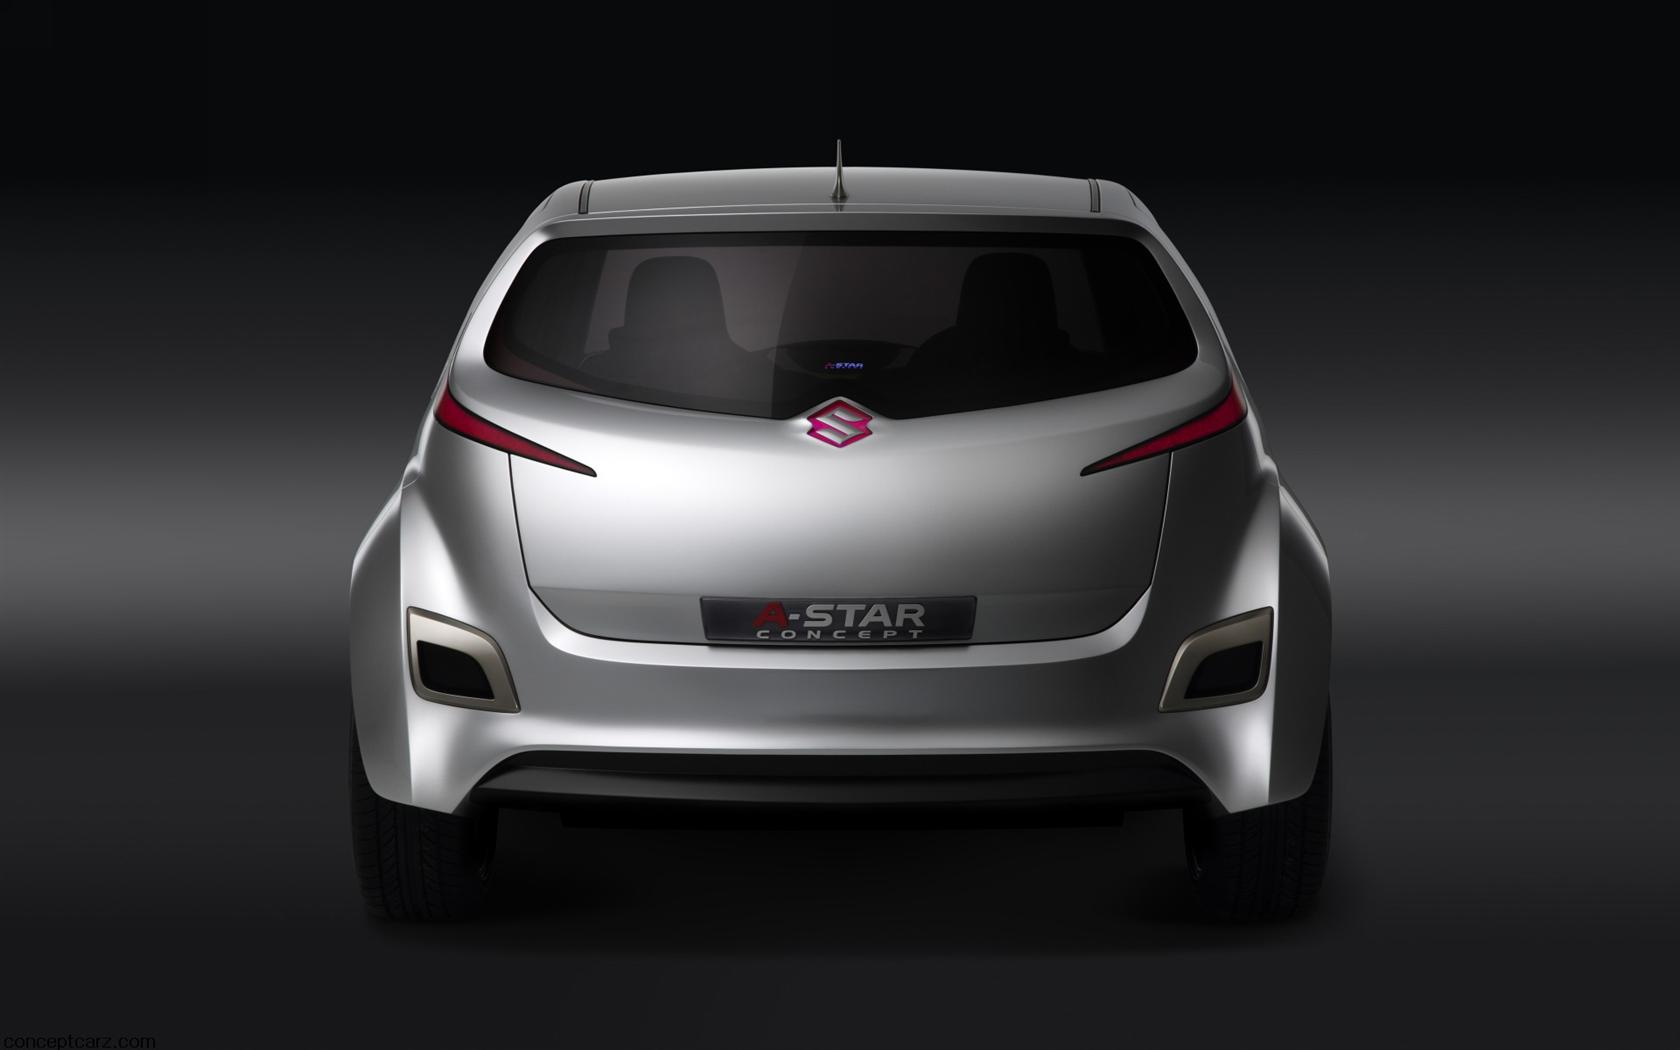 2019 Suzuki A Star Concept photo - 1